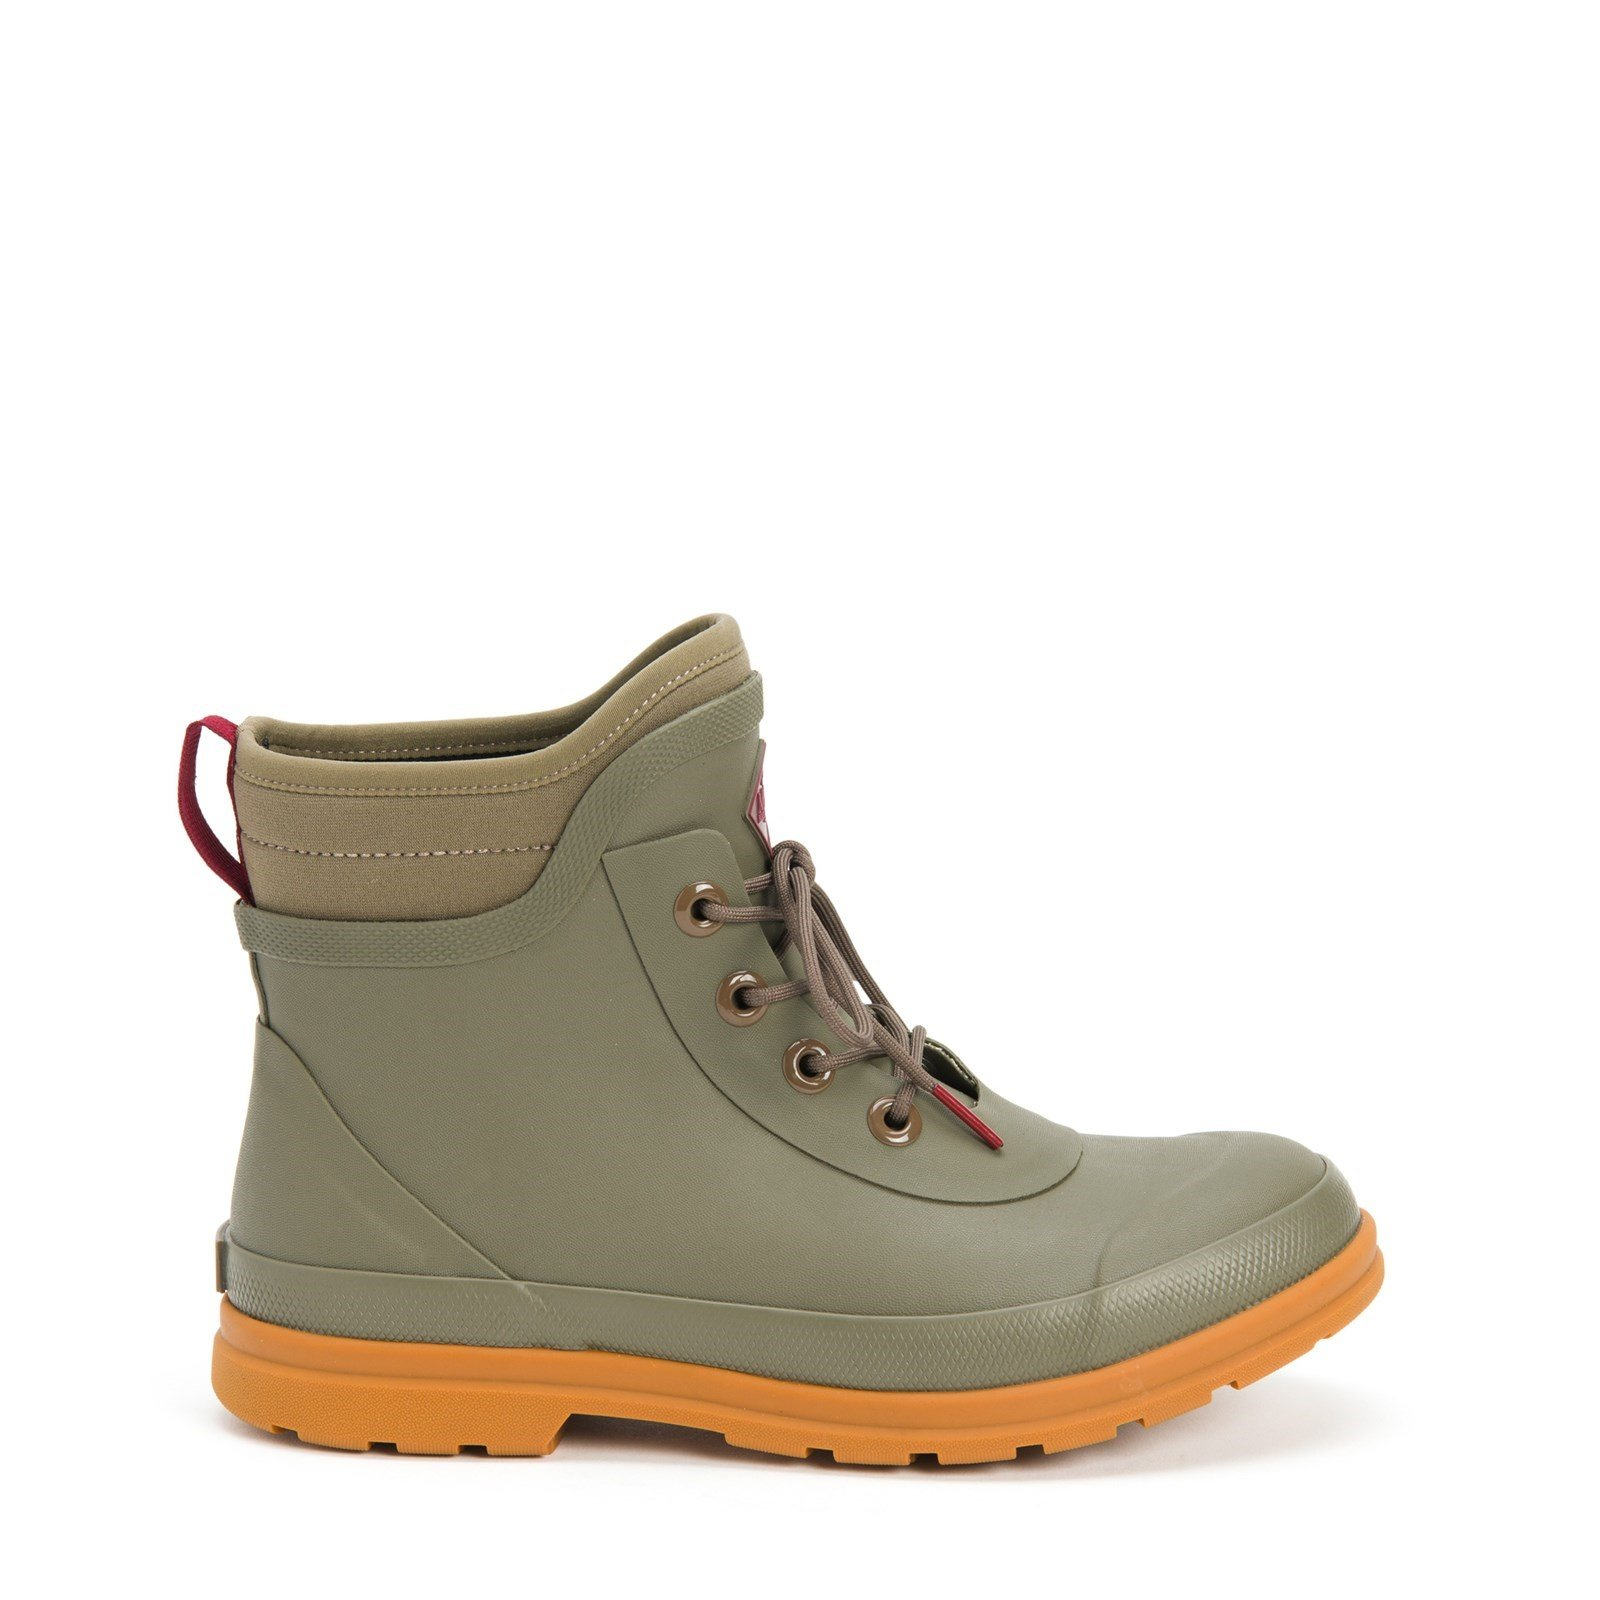 Muck Boots Women's Originals Lace Up Ankle Boot Various Colours 30079 - Taupe 8